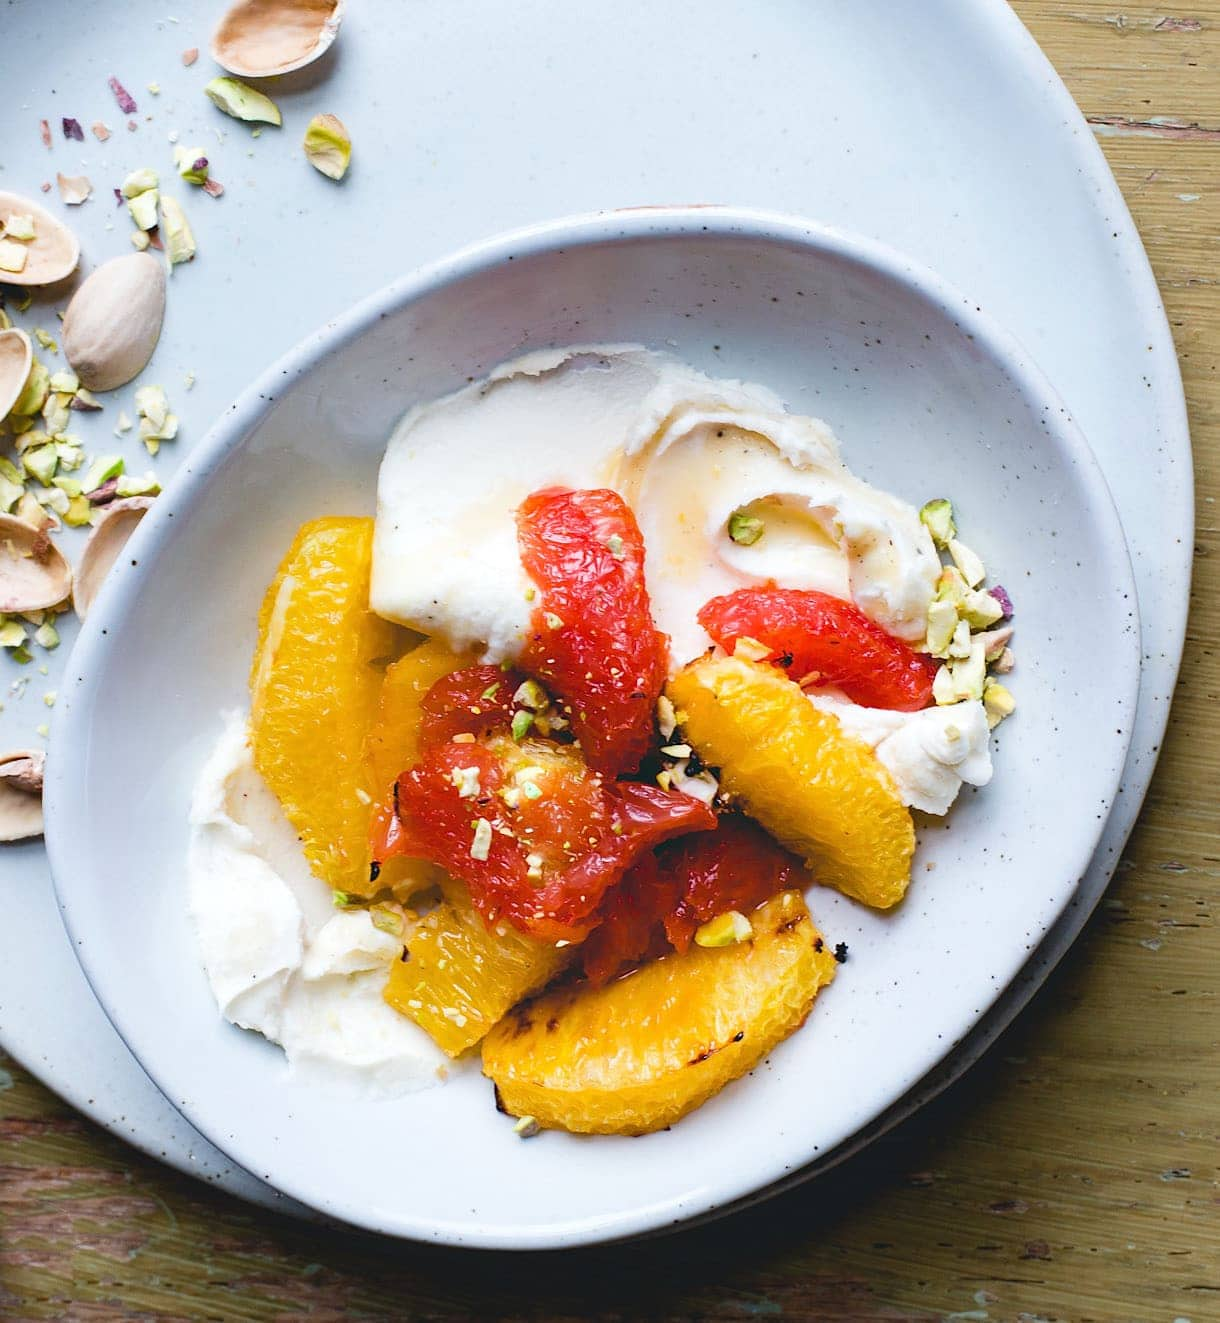 Roasted Citrus Bowl with Pistachios & Honey Mascarpone